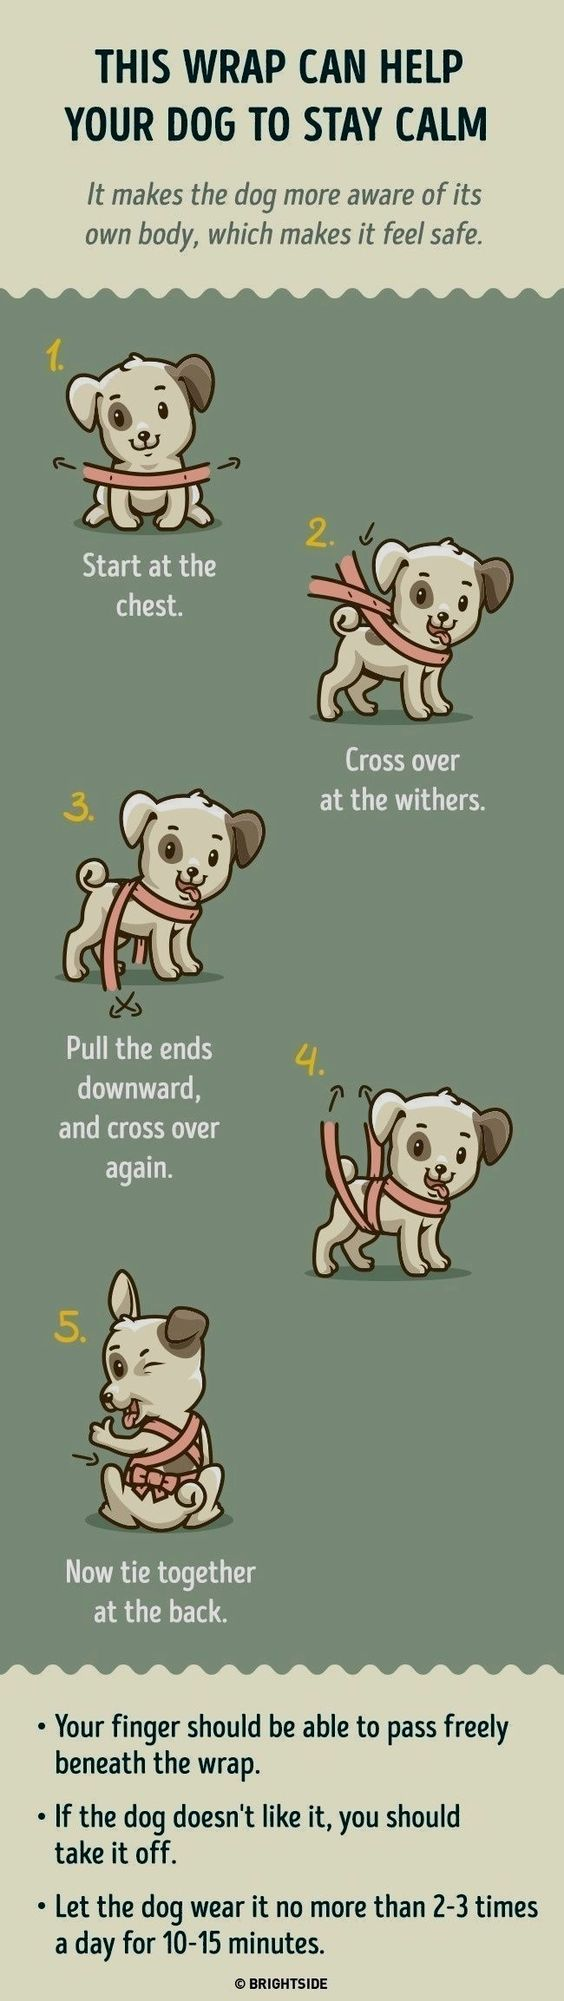 Wrapping trick to keep your dog calm by making him/her feel safe